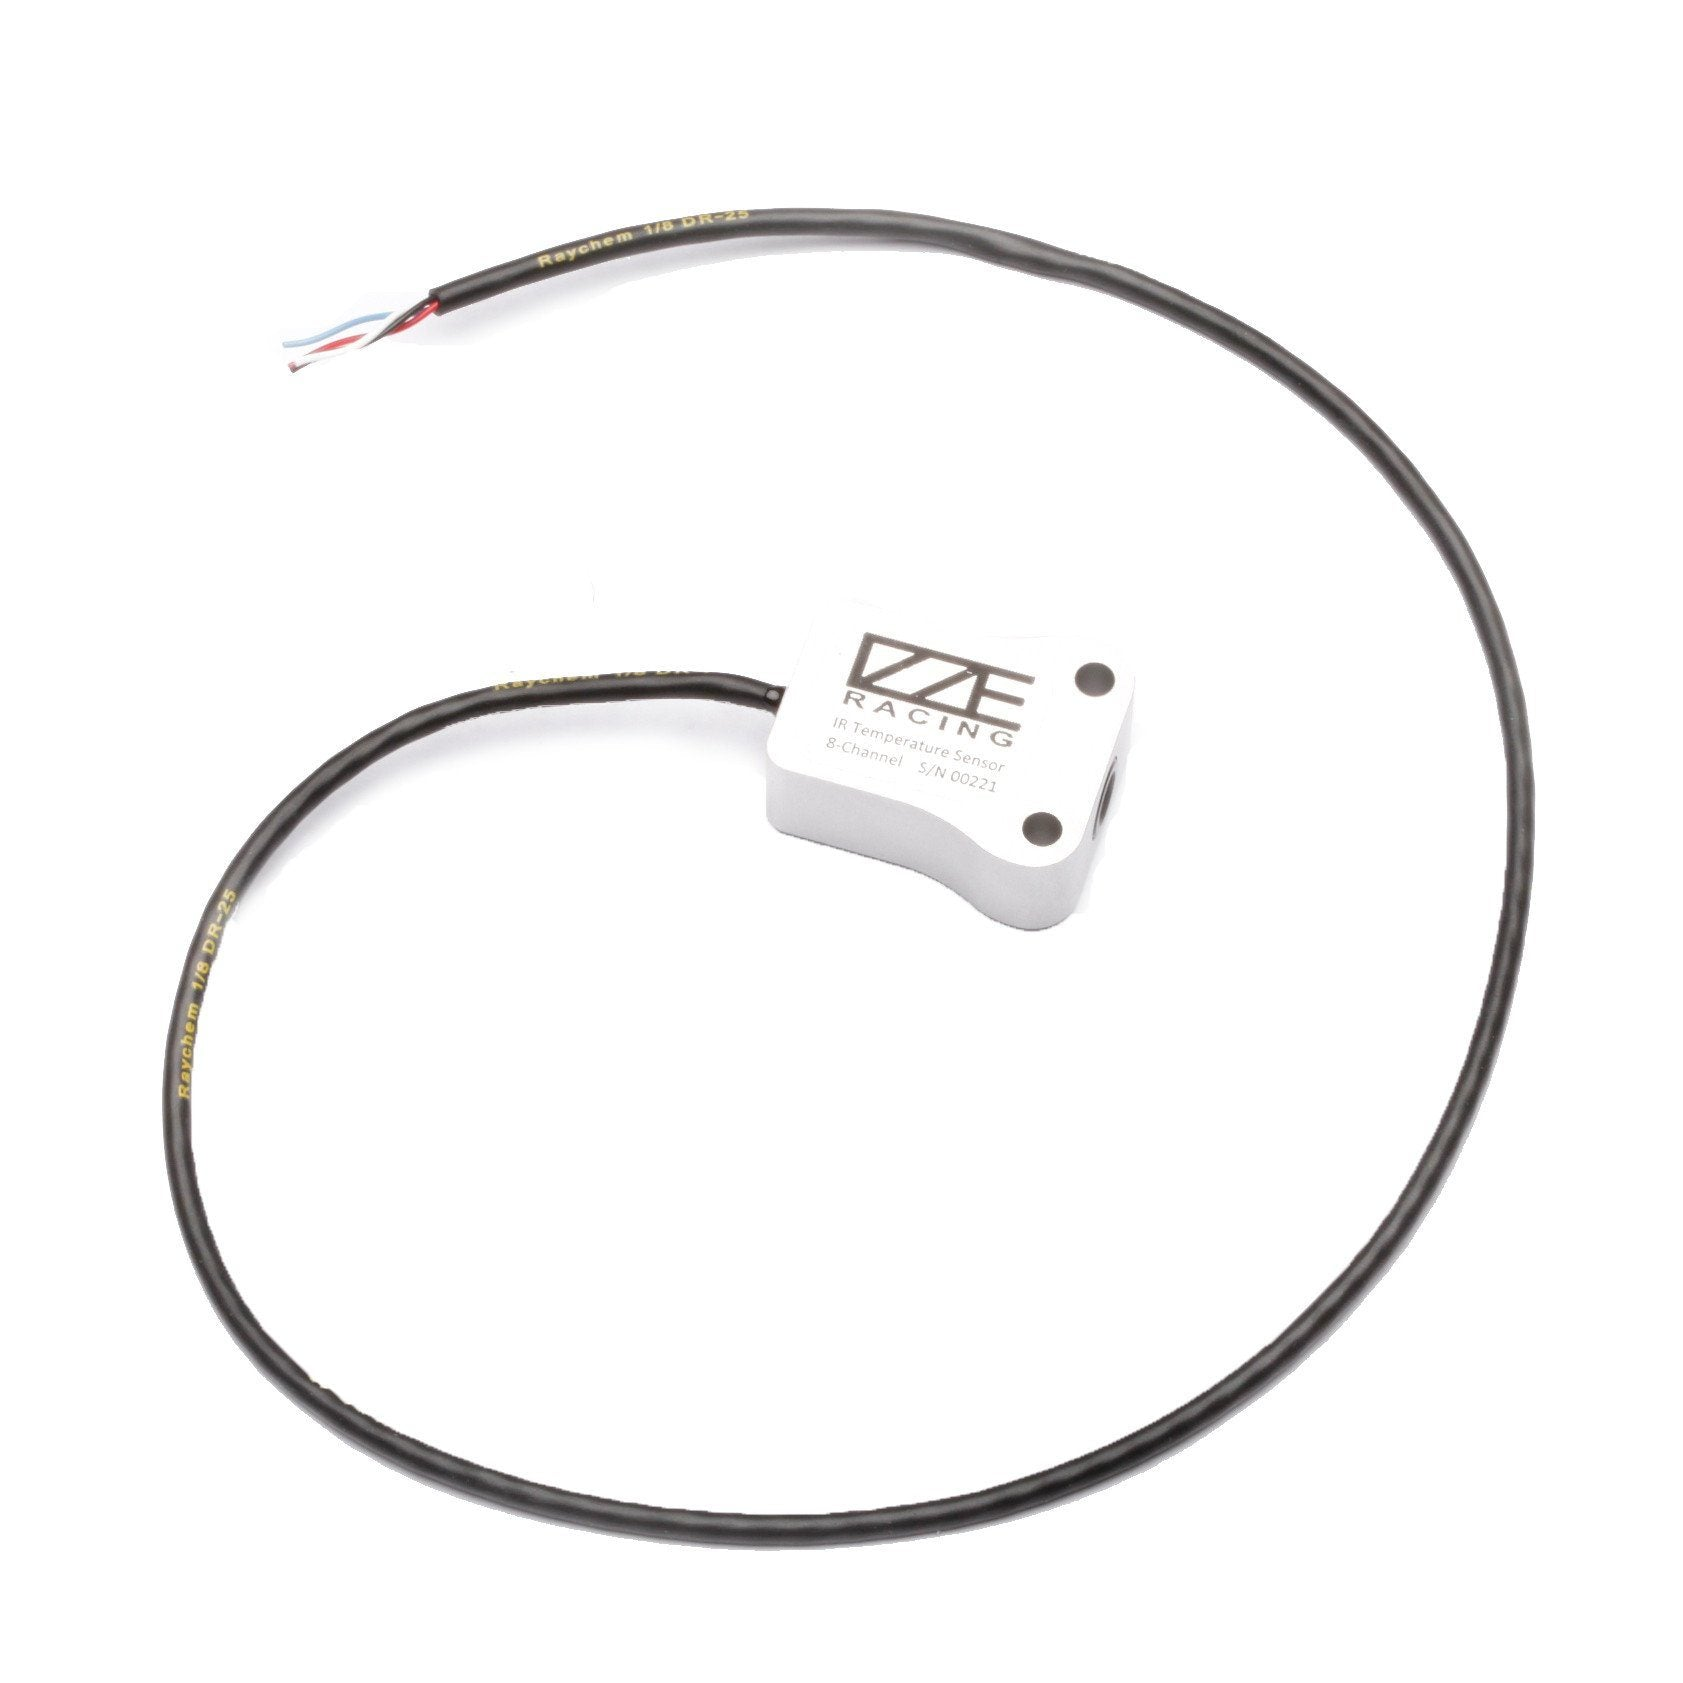 Sensors - IZZE Racing Tire Infrared Temperature Sensors